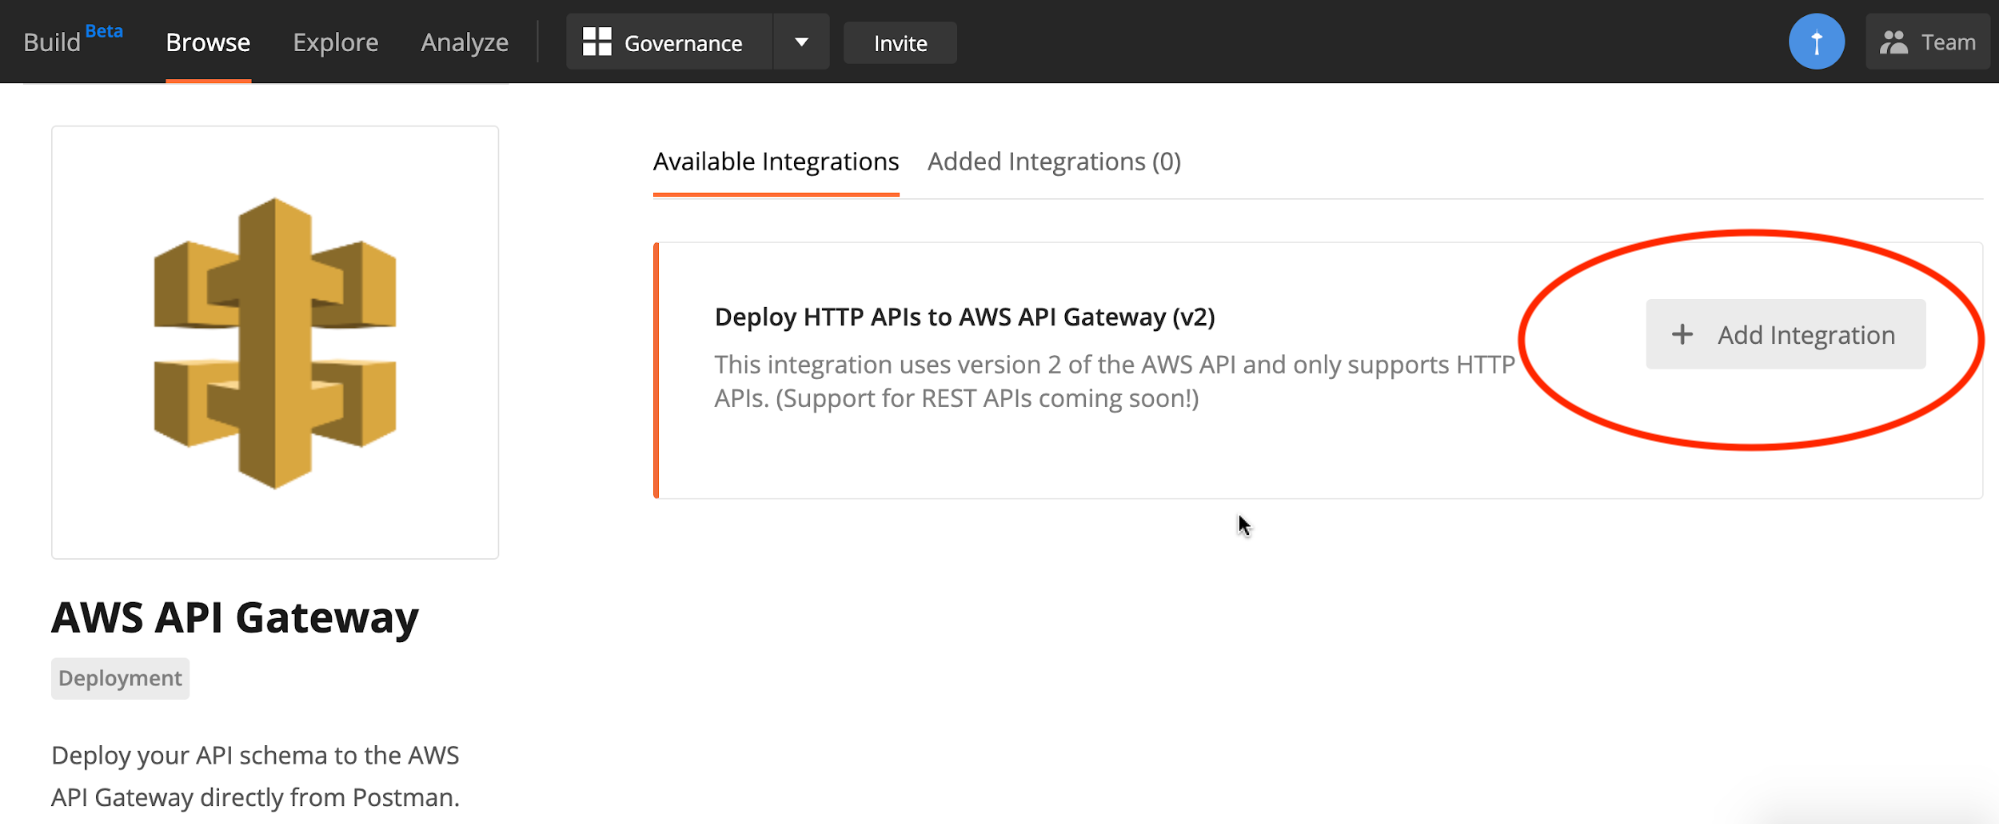 Available integrations for AWS API Gateway